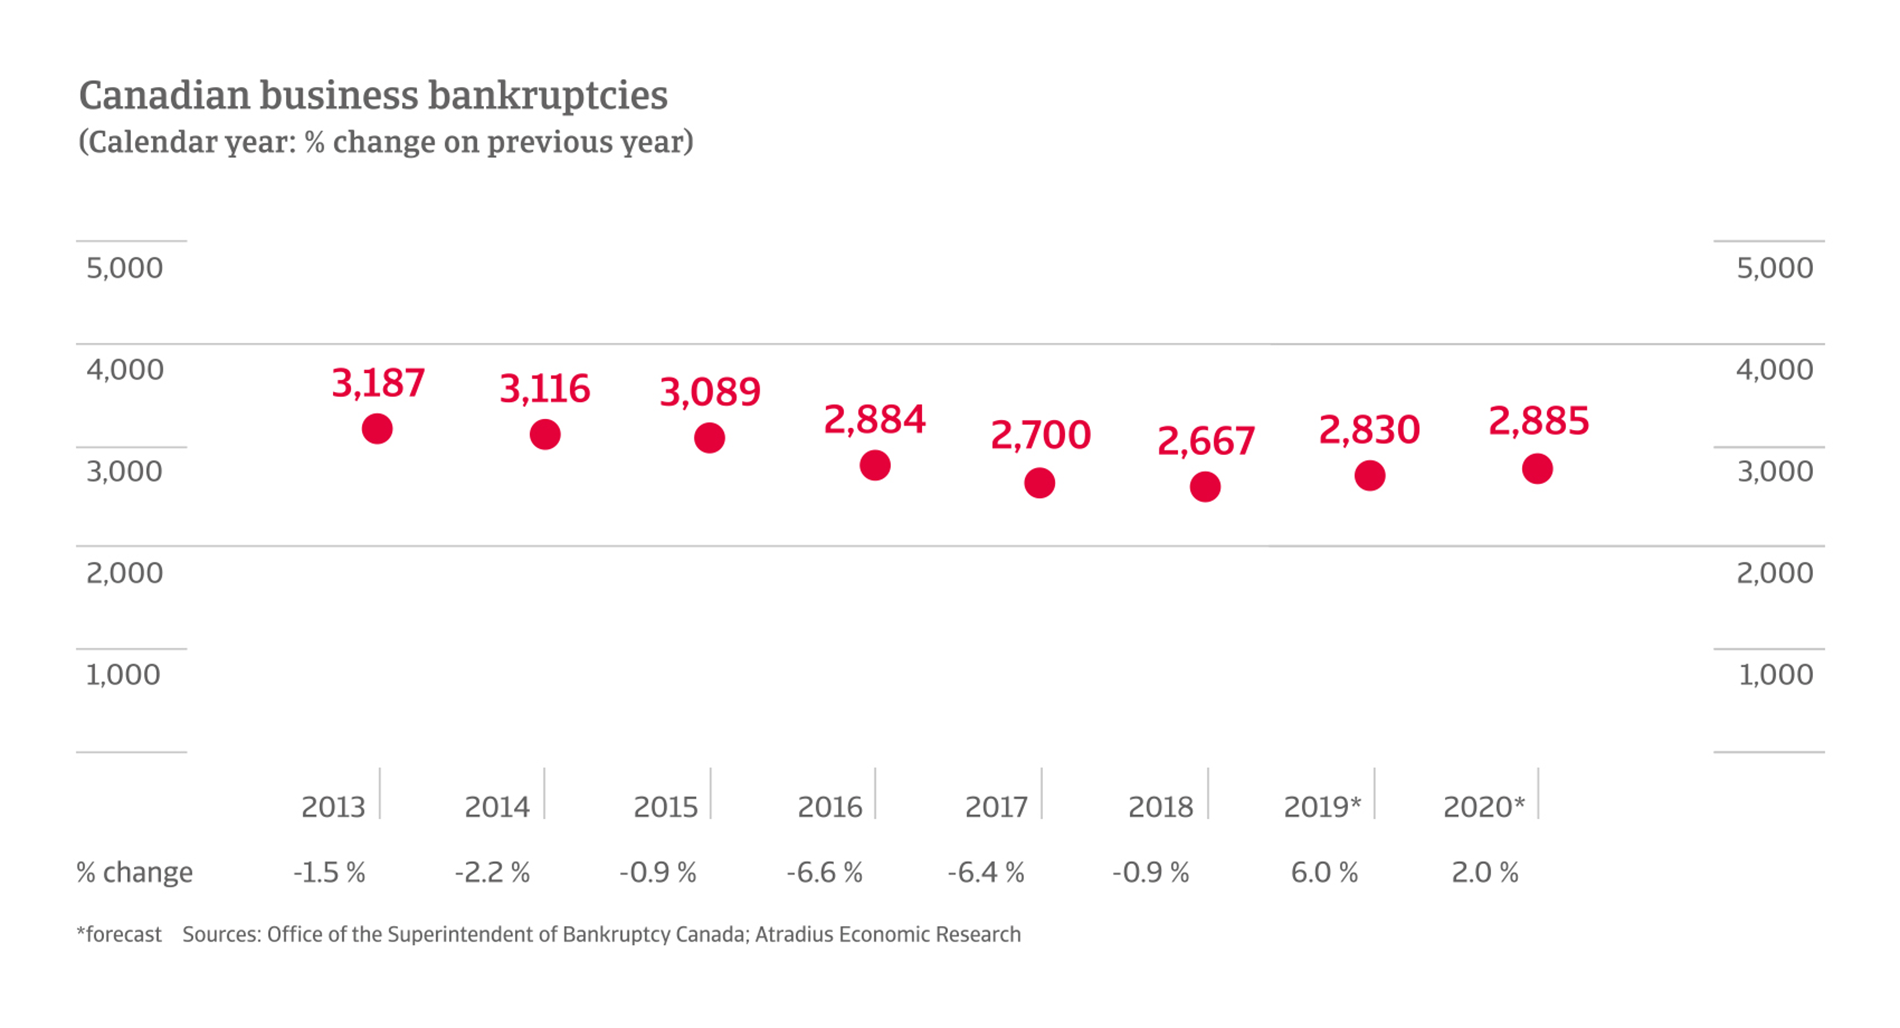 Business bankruptcies in Canada